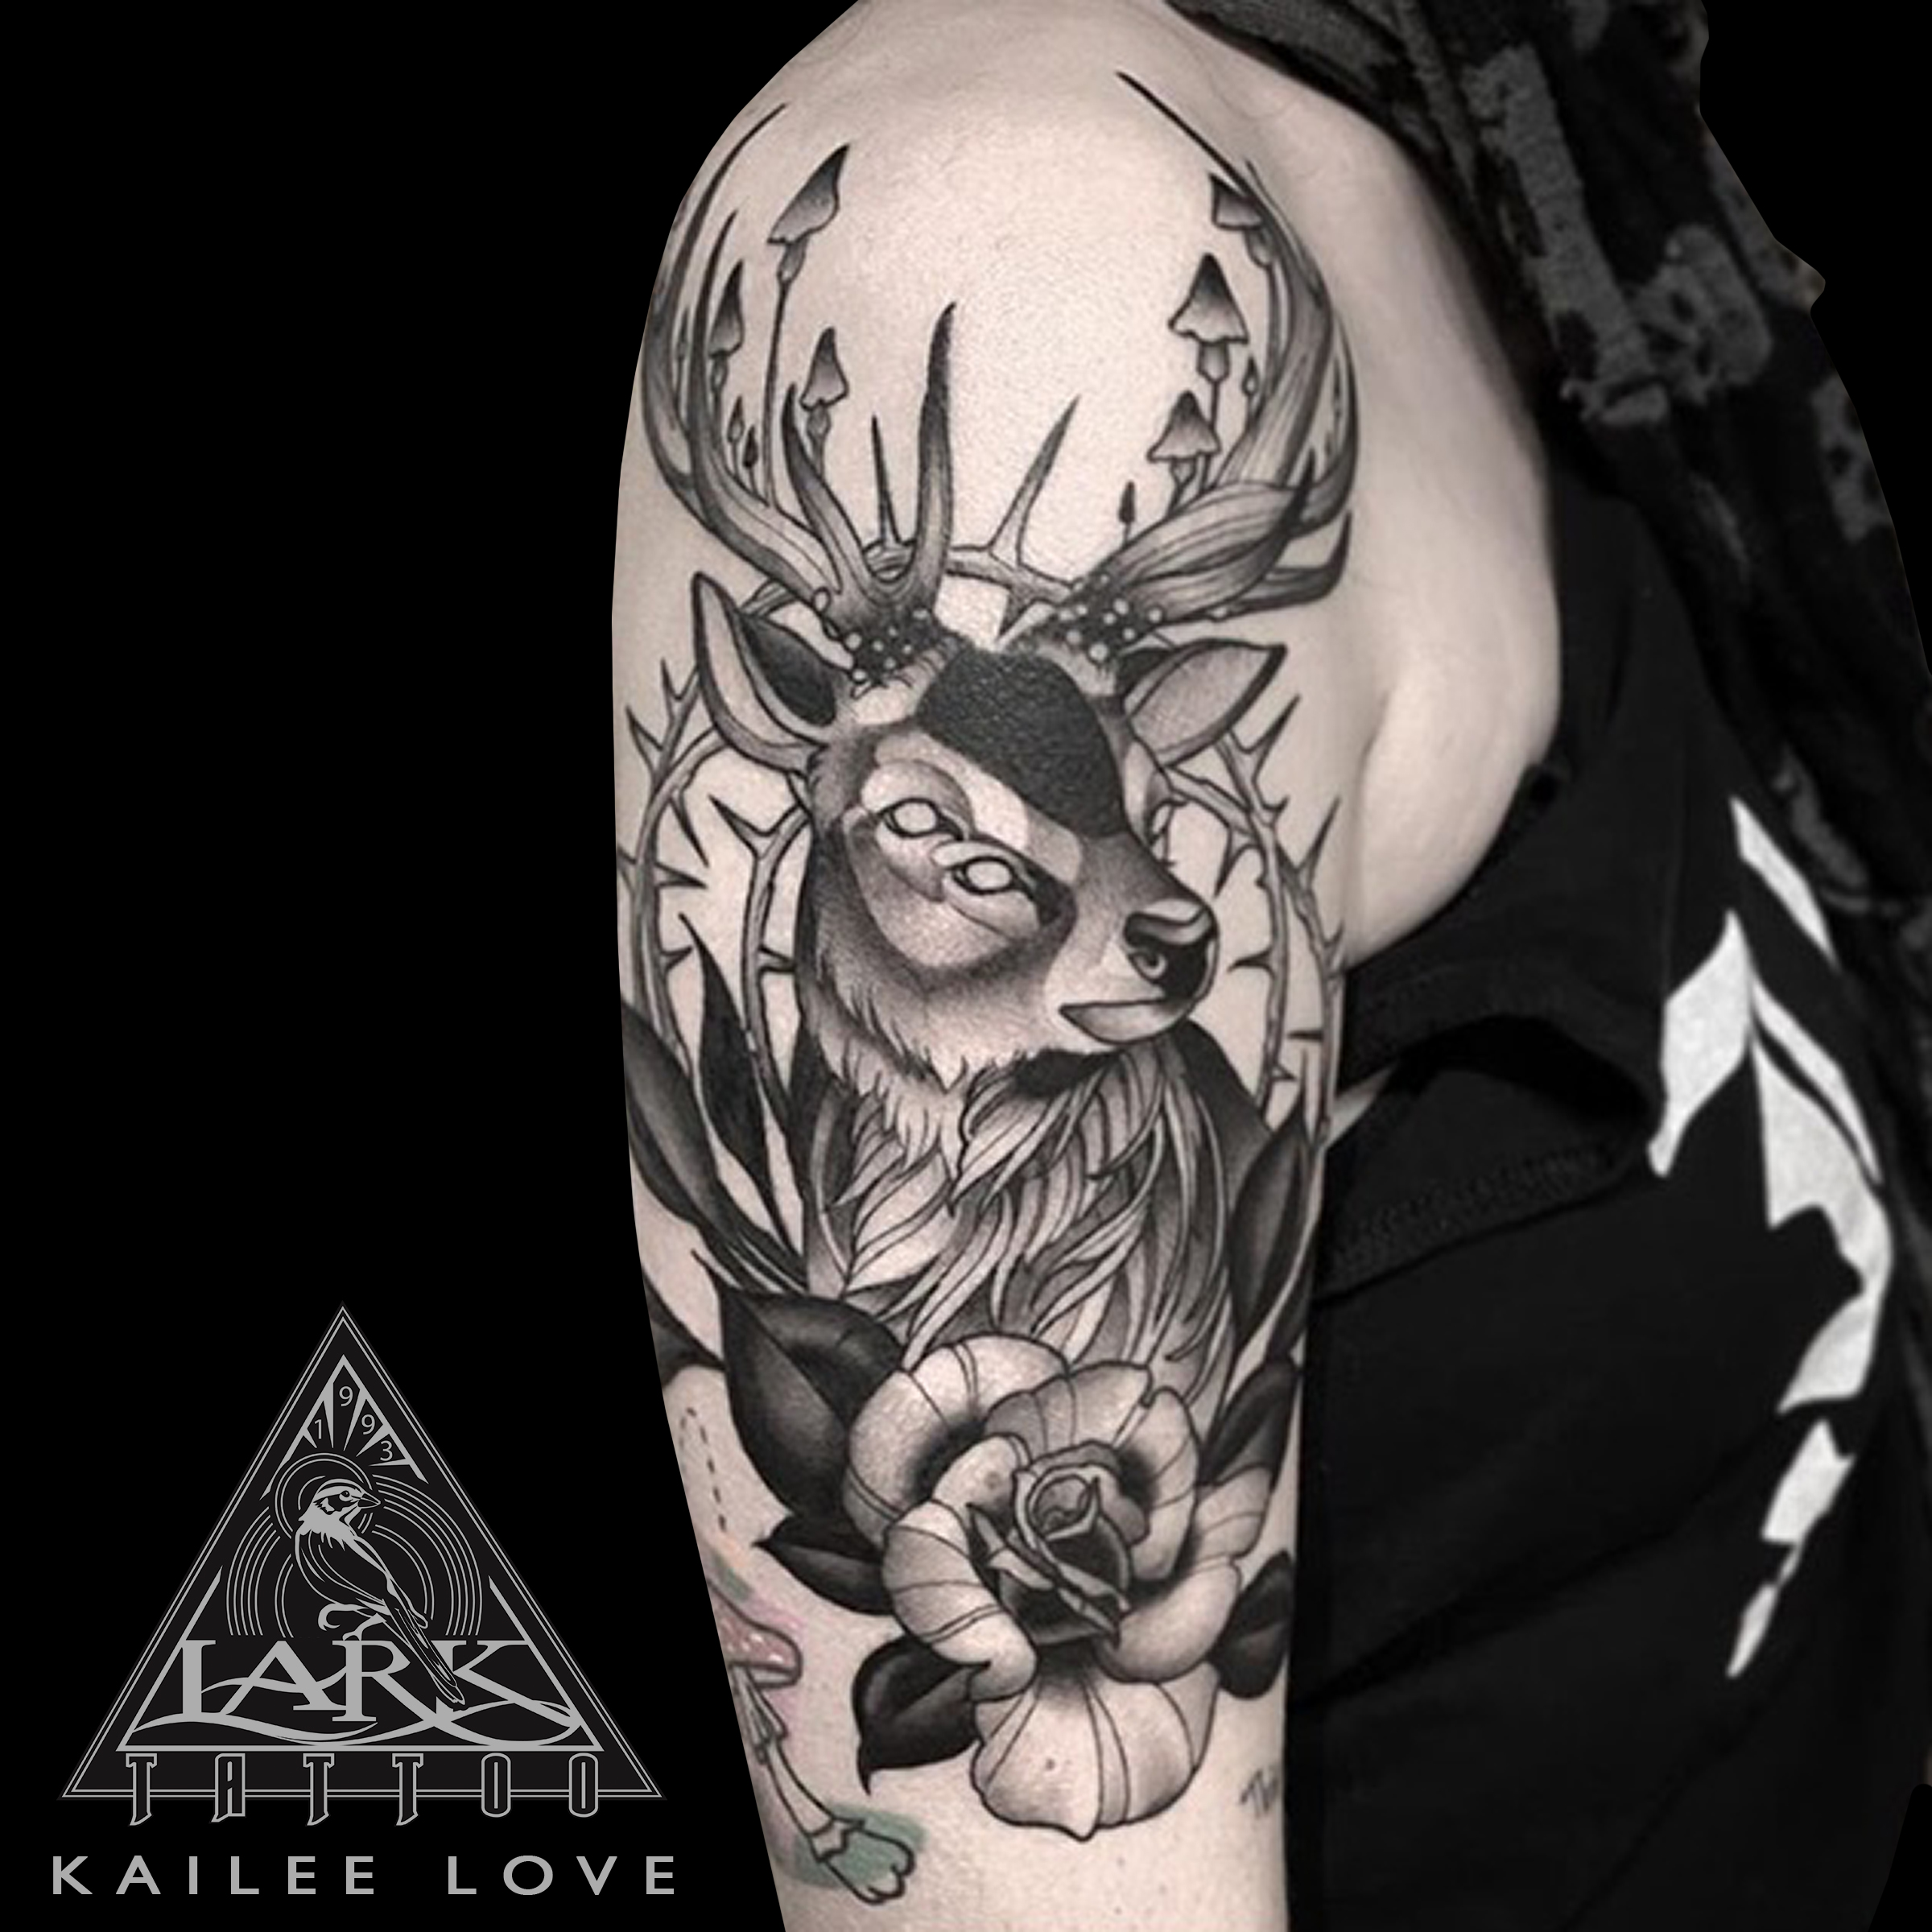 #LarkTattoo #KaileeLove #KaileeLoveLarkTattoo #Tattoo #Tattoos #Deer #DeerTattoo #Animal #AnimalTattoo #Rose #RoseTattoo #Nature #NatureTattoo #Mushroom #MushroomTattoo #BNG #BNGTattoo #BlackAndGray #BlackAndGrayTattoo #BlackAndGrey #BlackAndGreyTattoo #HalfSleeve #HalfSleeveTattoo #TattooArtist #Tattoist #Tattooer #LongIslandTattooArtist #LongIslandTattooer #LongIslandTattoo #TattooOfTheDay #Tat #Tats #Tatts #Tatted #Inked #Ink #TattooInk #AmazingInk #AmazingTattoo #BodyArt #LarkTattooWestbury #Westbury #LongIsland #NY #NewYork #USA #Art #Tattedup #InkedUp #LarkTattoos